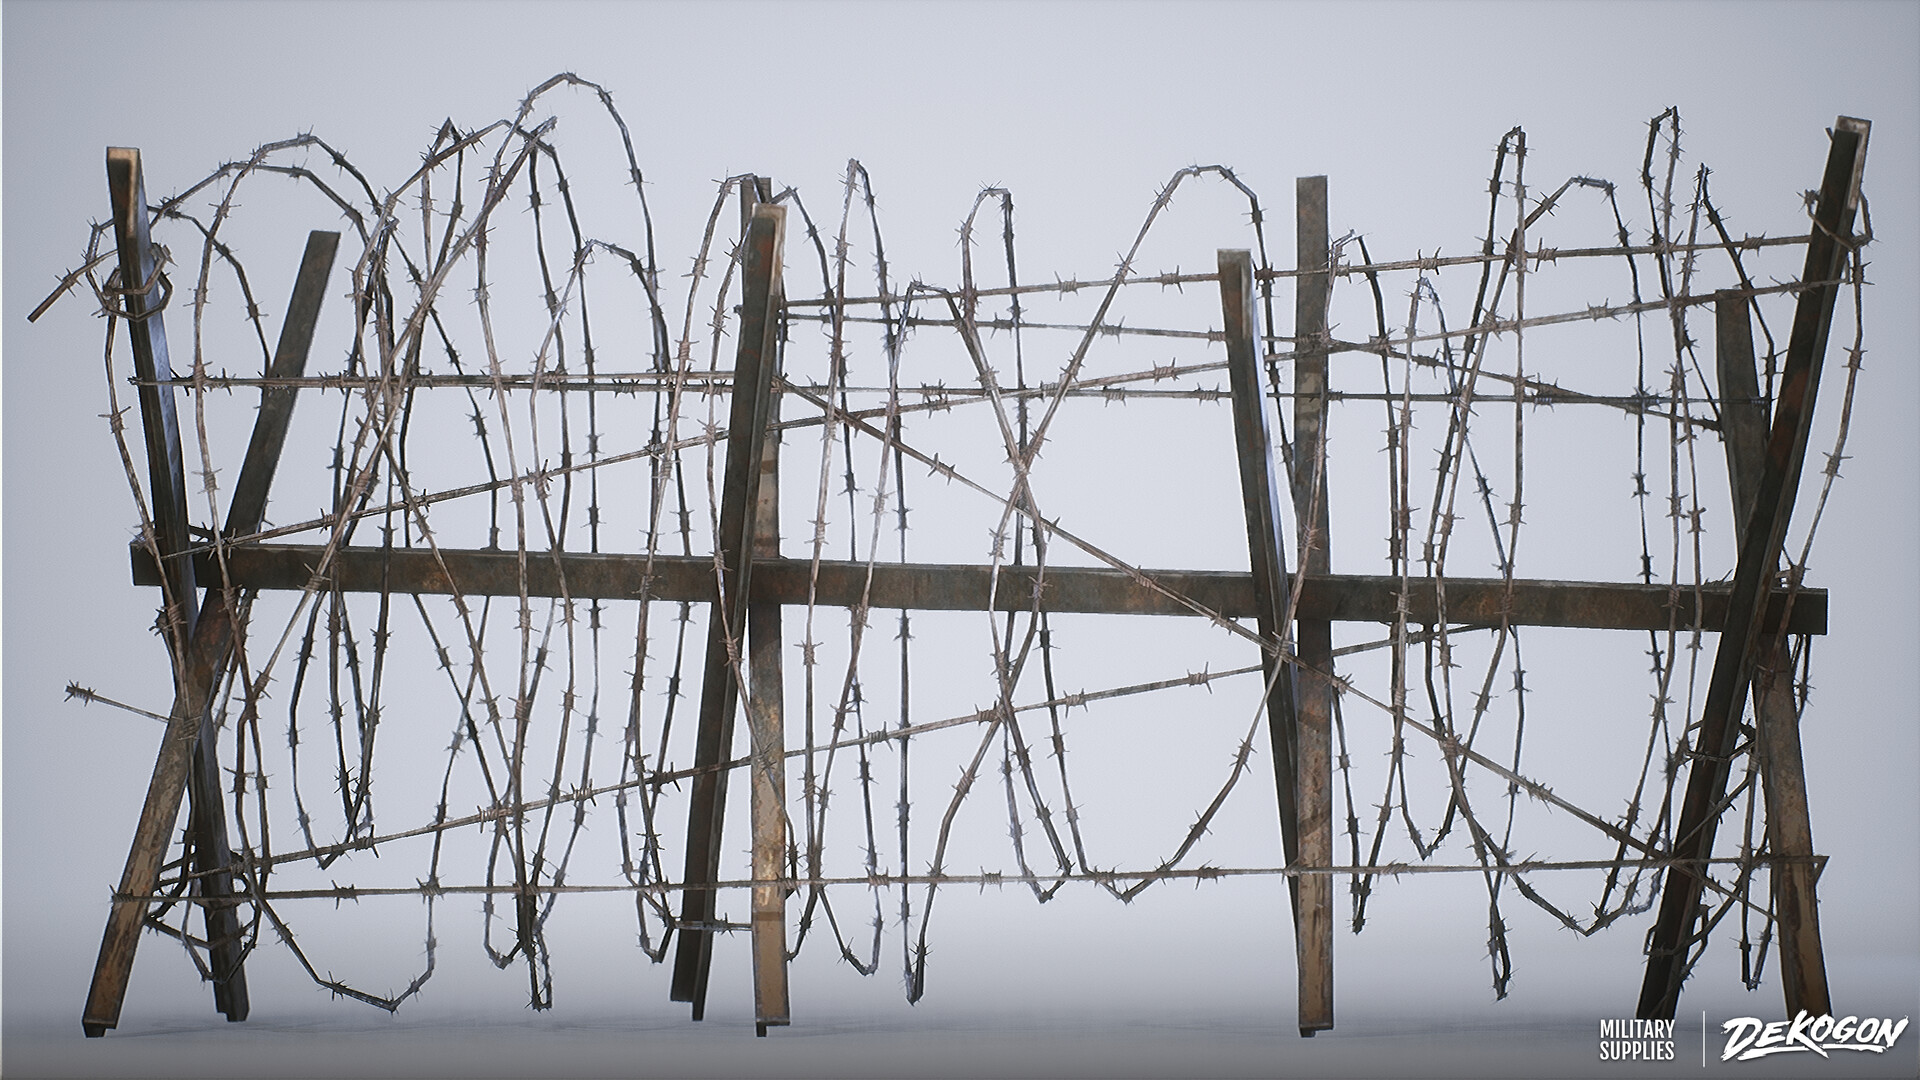 Wahyu nugraha barbed wire stop 02a 03